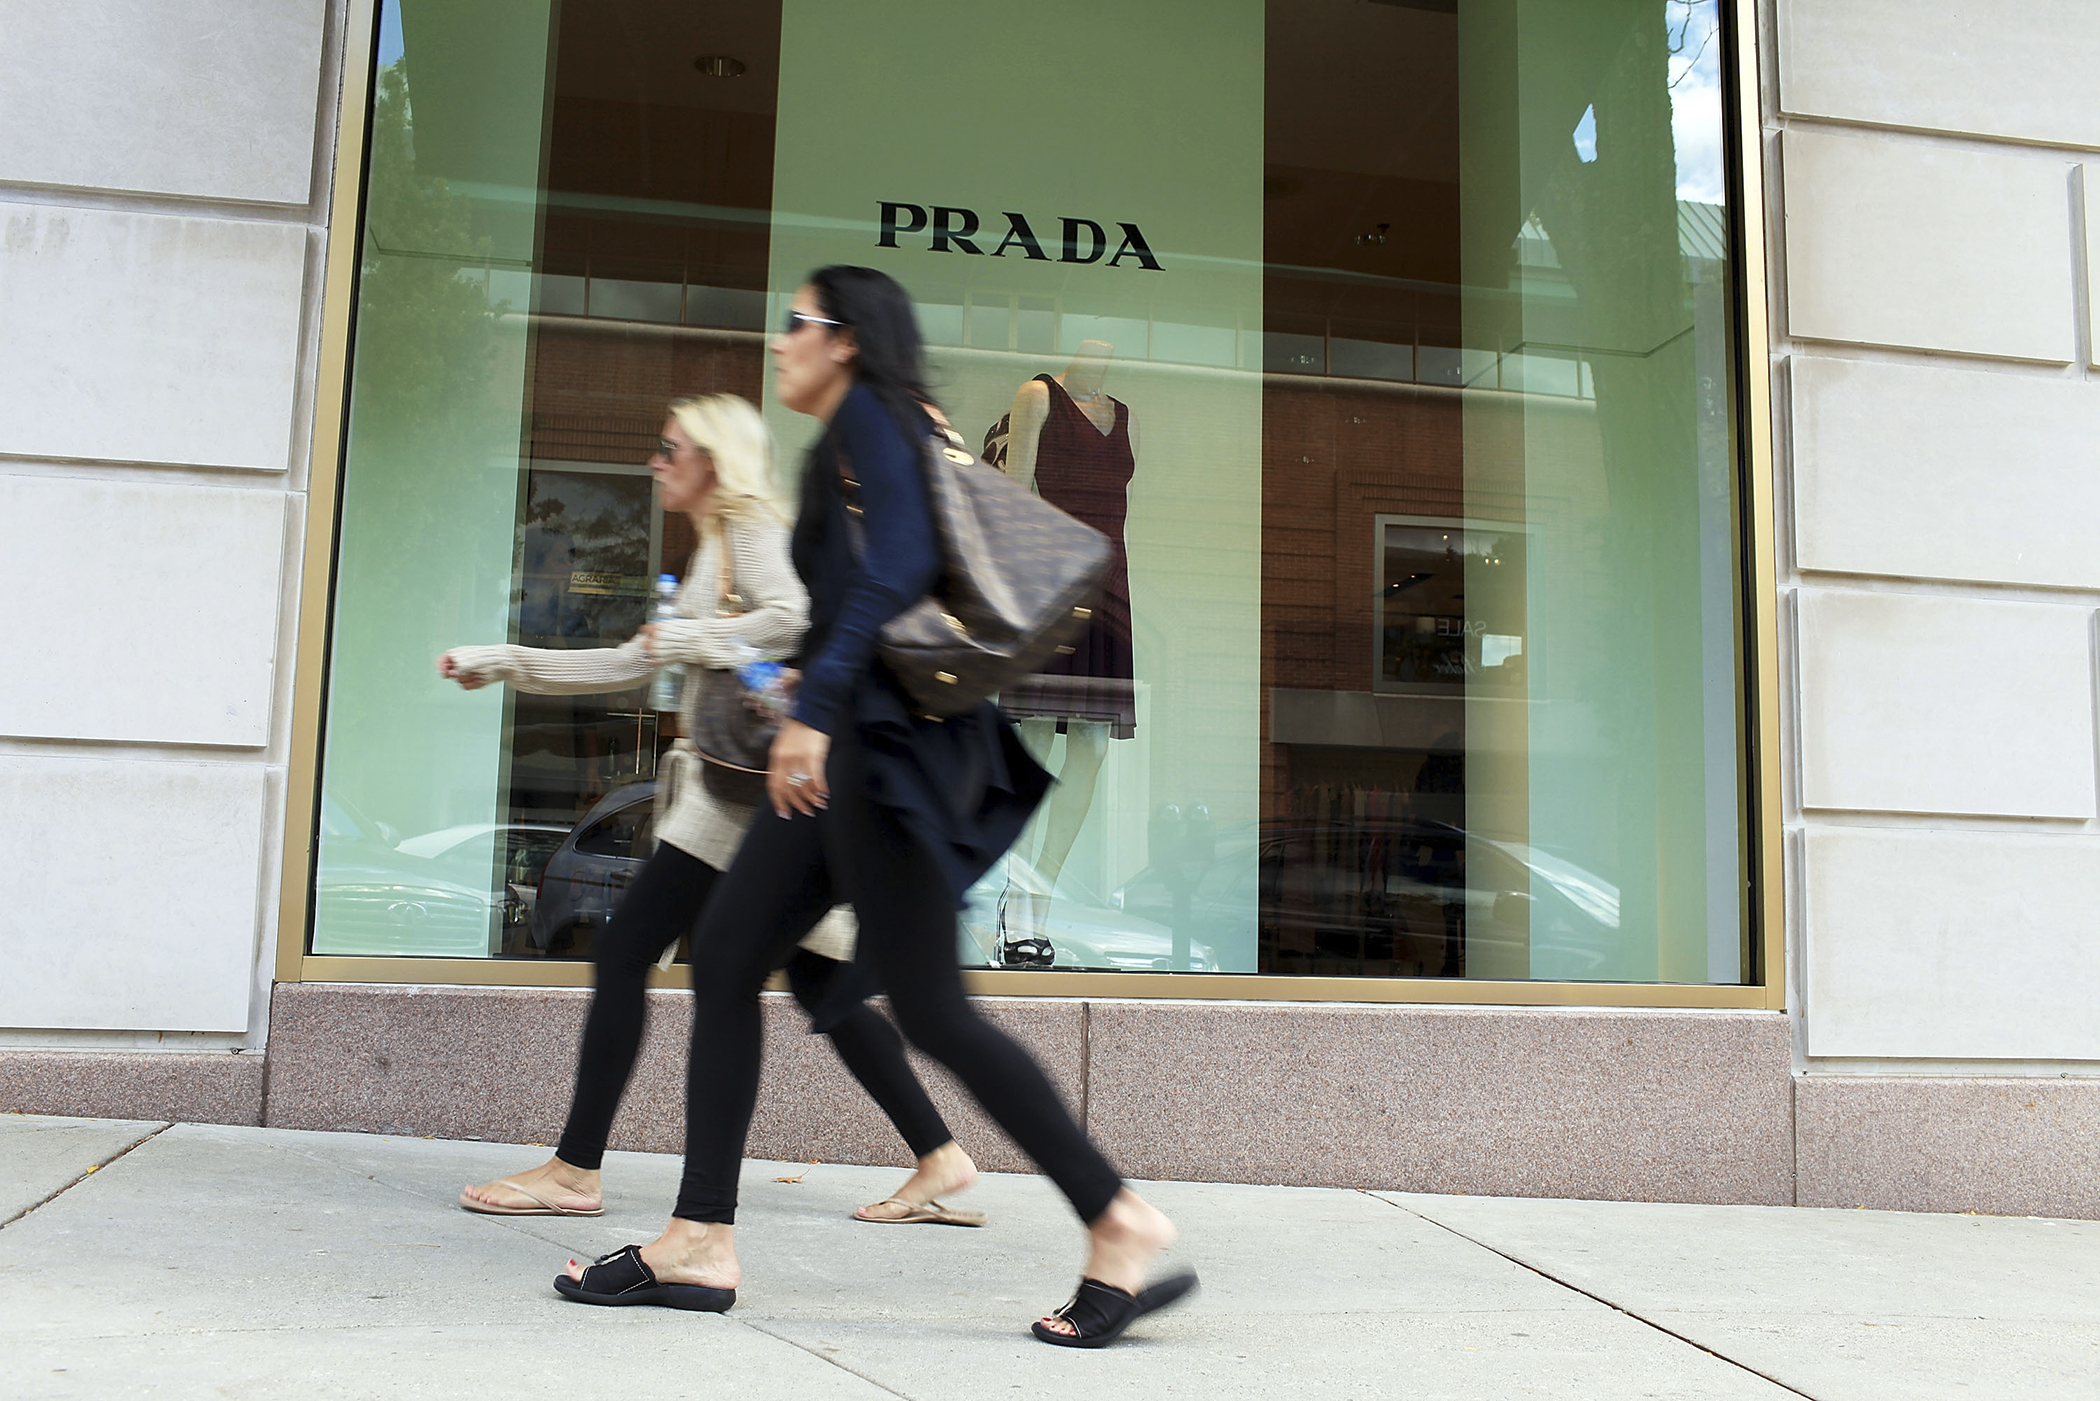 4. Greenwich, Connecticut: Luxury brands are a common sight in Greenwich, where household income clocks in at $136,032. Median home price just tops $1 million, and average annual property tax is a whopping $14,132.